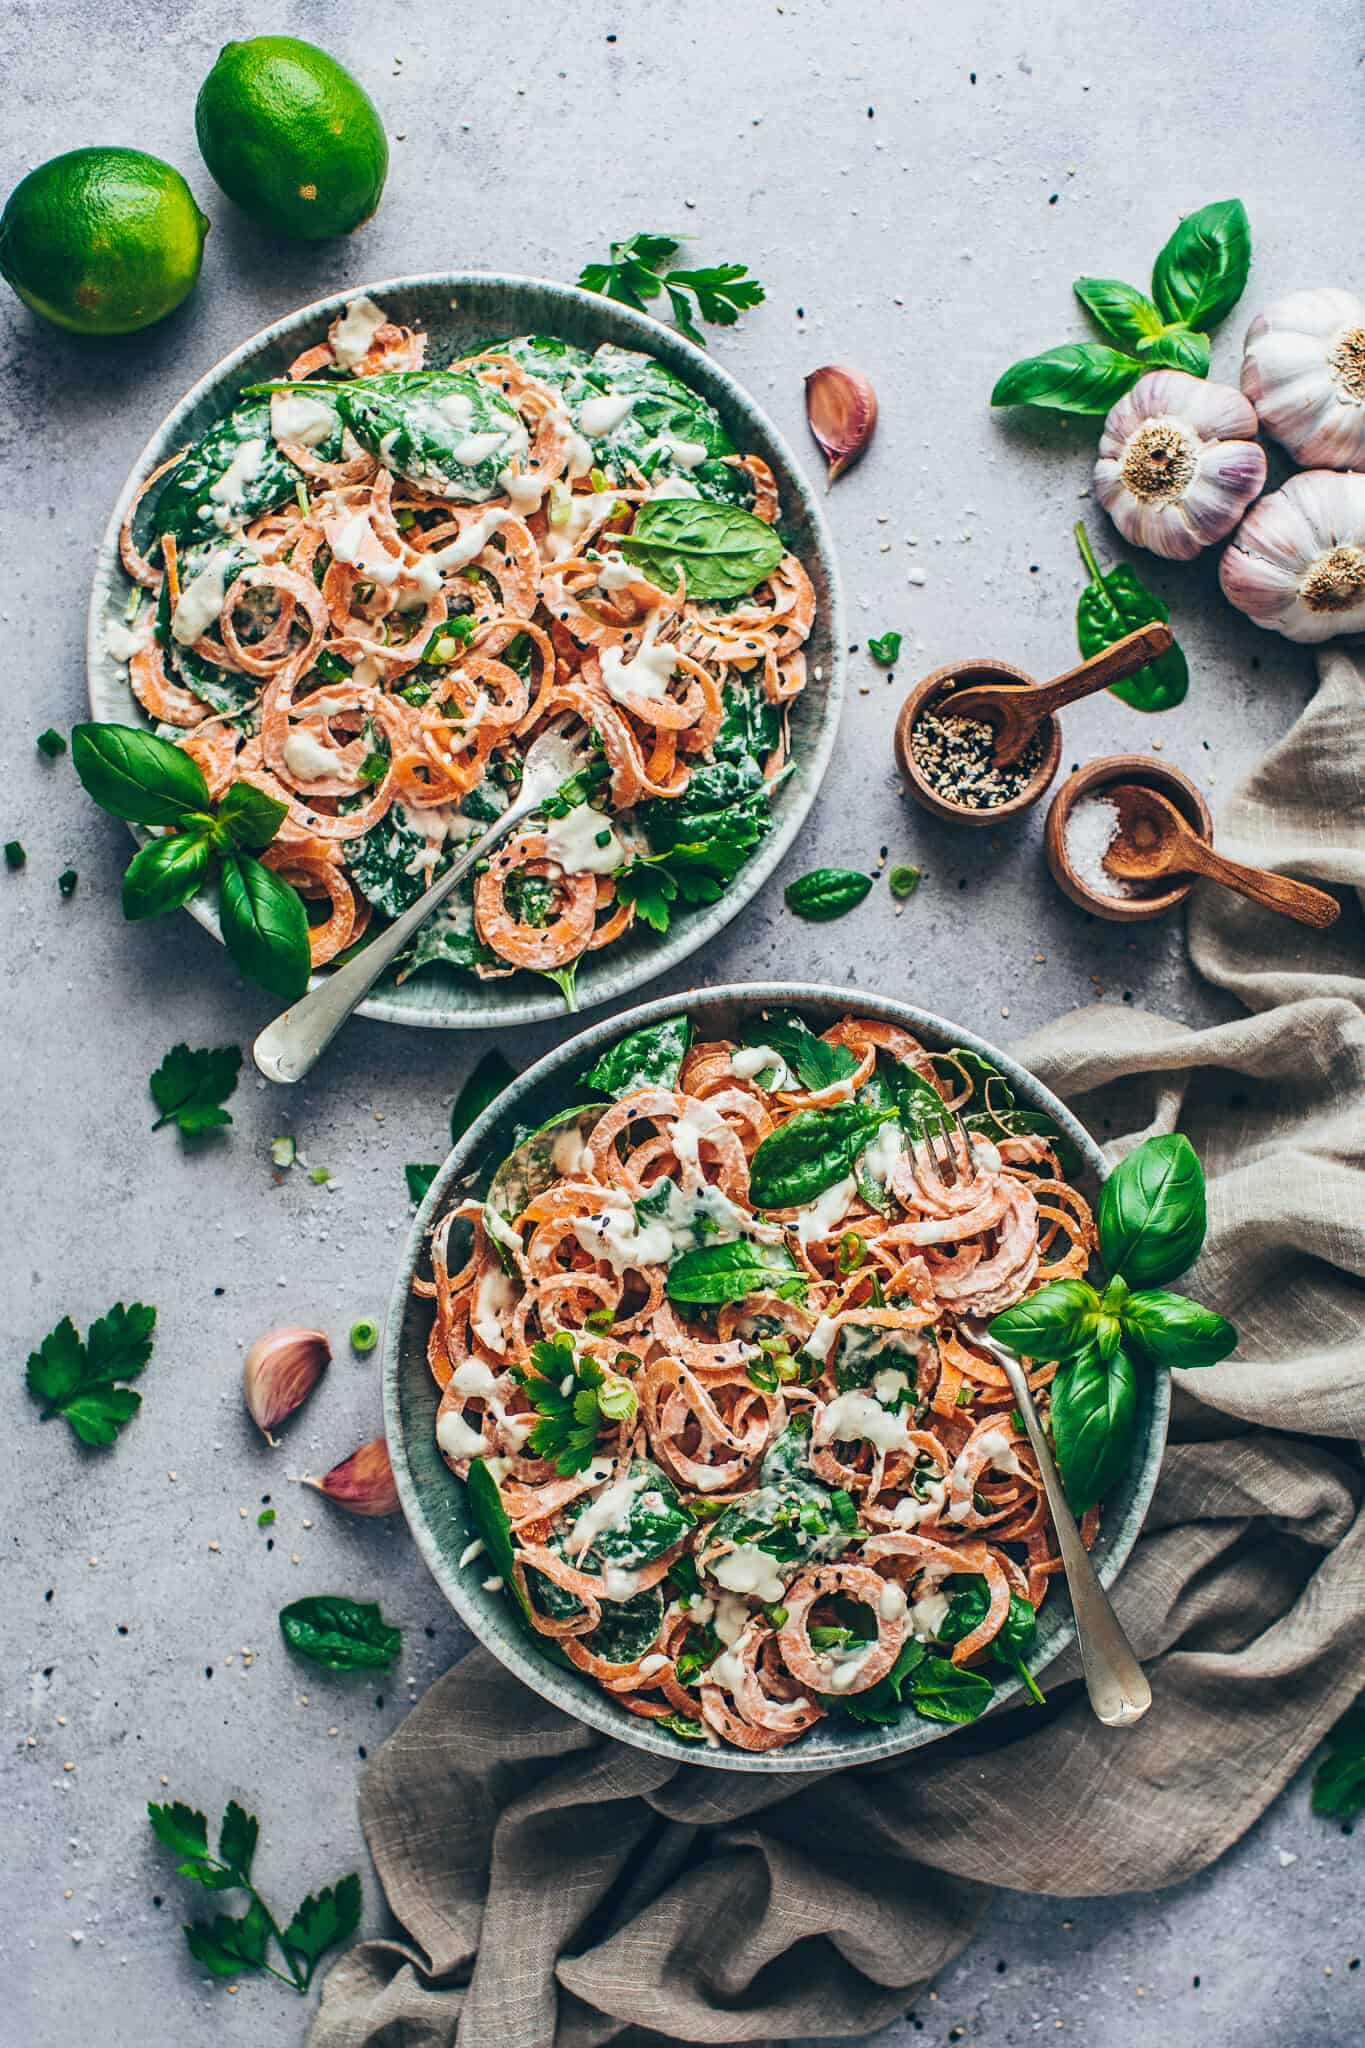 Sweet Potato Noodles with Spinach and Cashew sauce